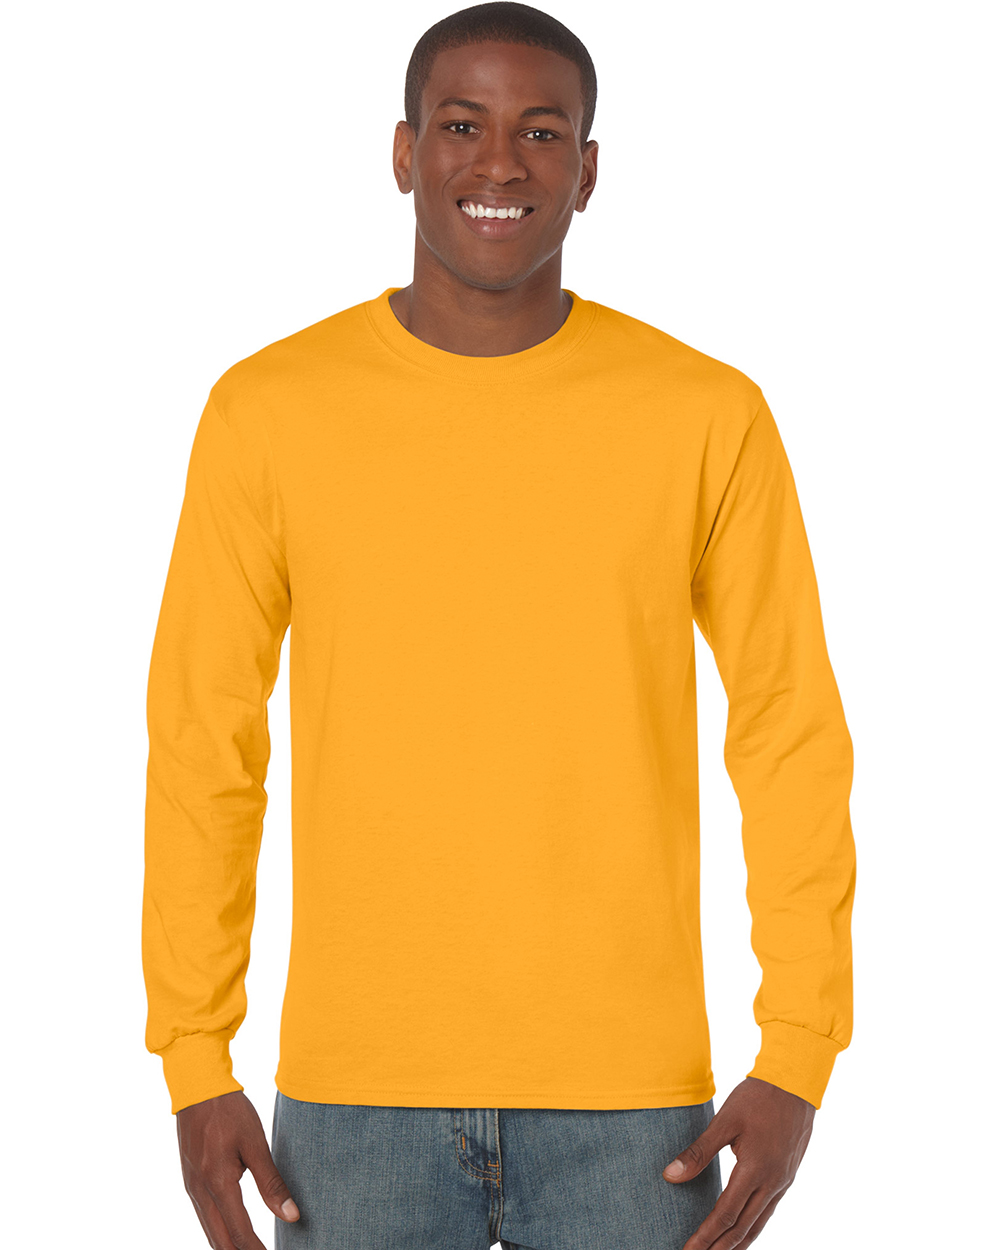 Gildan 5400     Heavy Cotton™    Classic Fit Adult Long Sleeve T-Shirt    5.3 oz. 100% Cotton